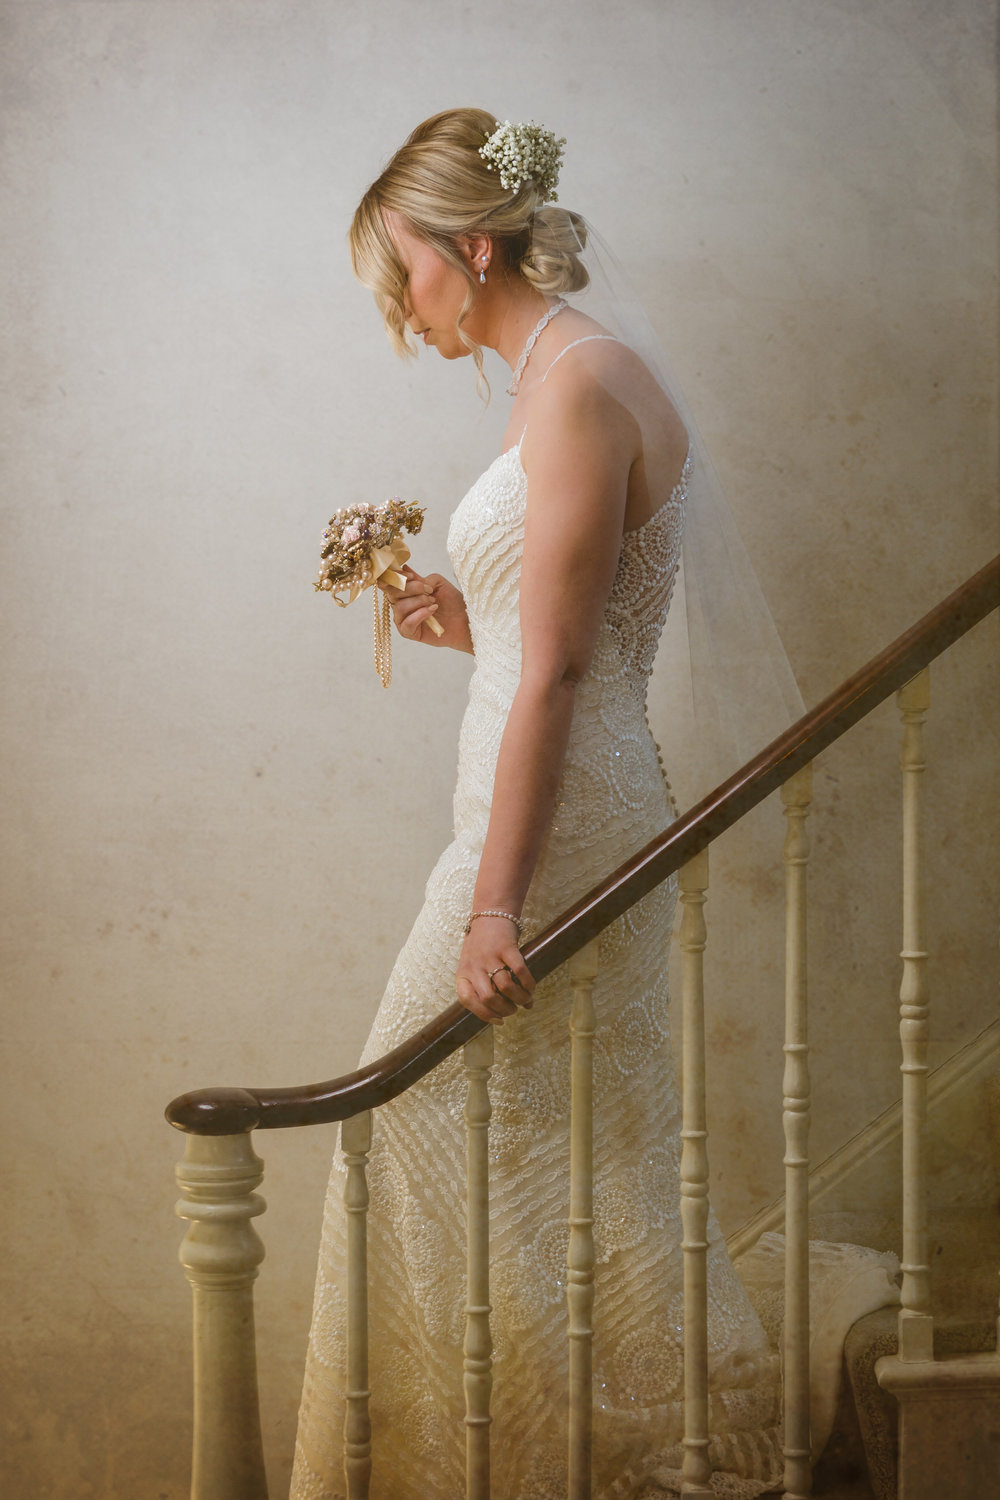 Dunedin-country-house-yorkshire-wedding-photographer.jpg